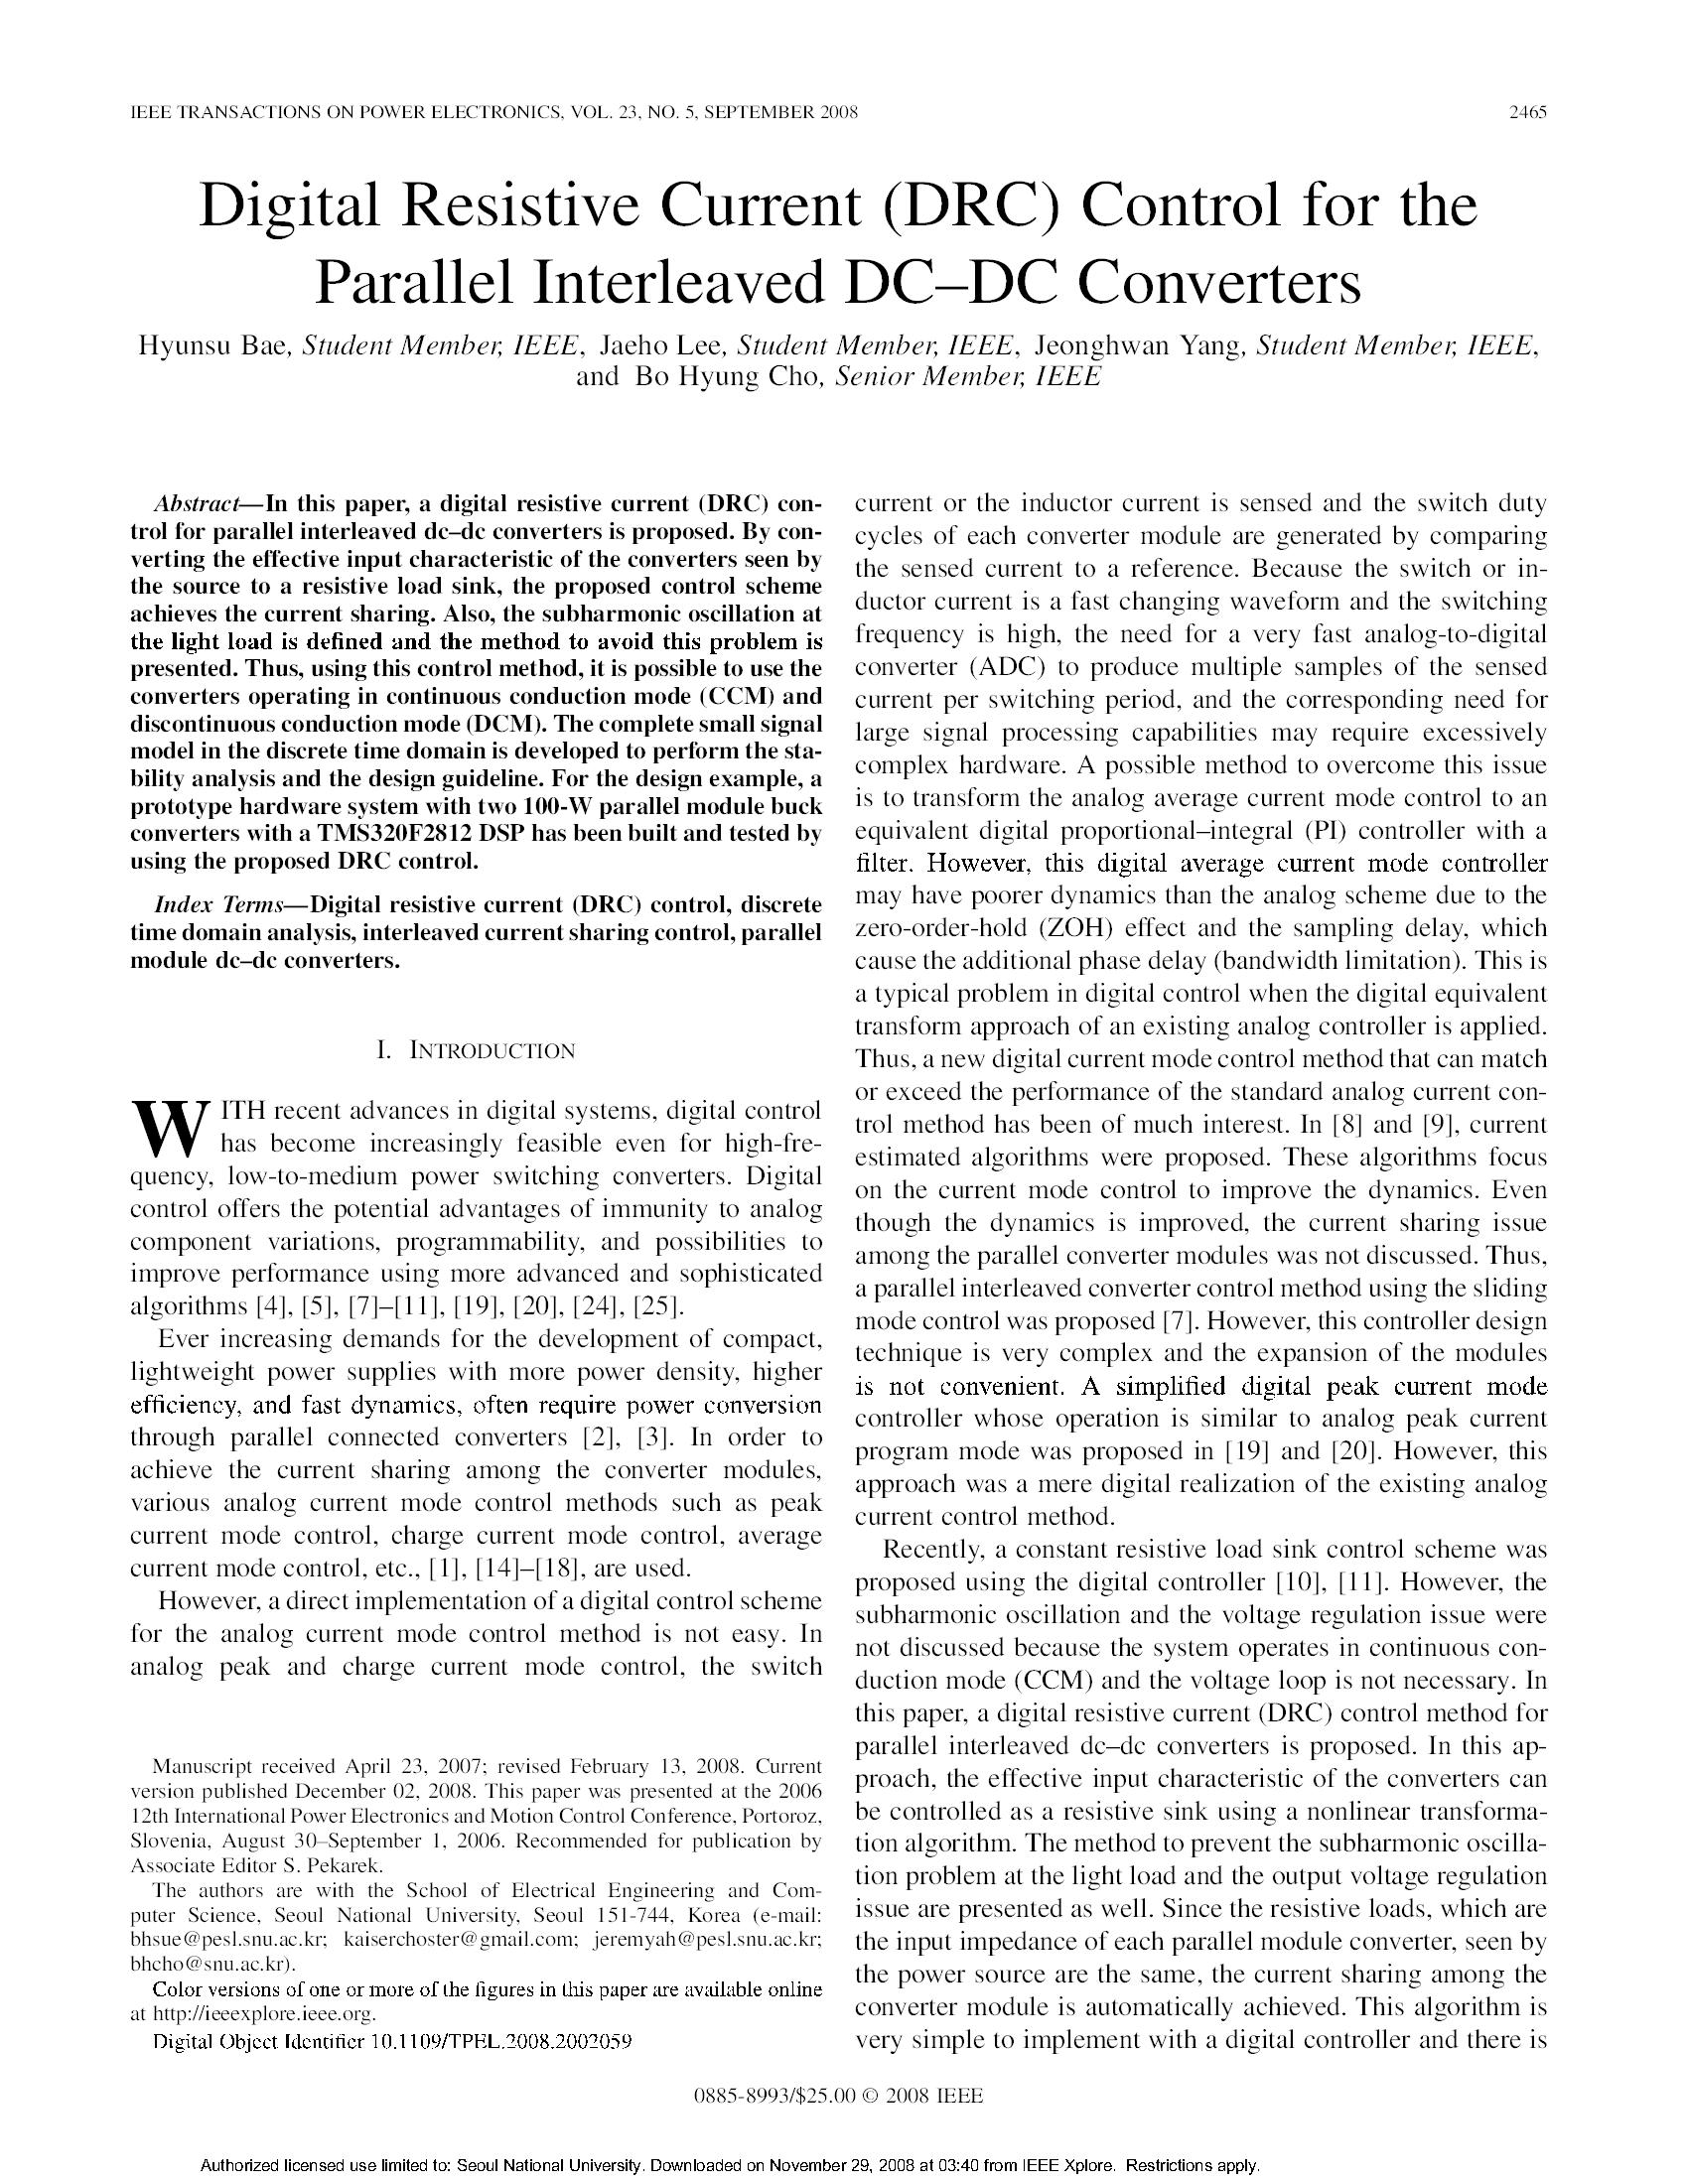 Digital Resistive Current (DRC) Control for the12